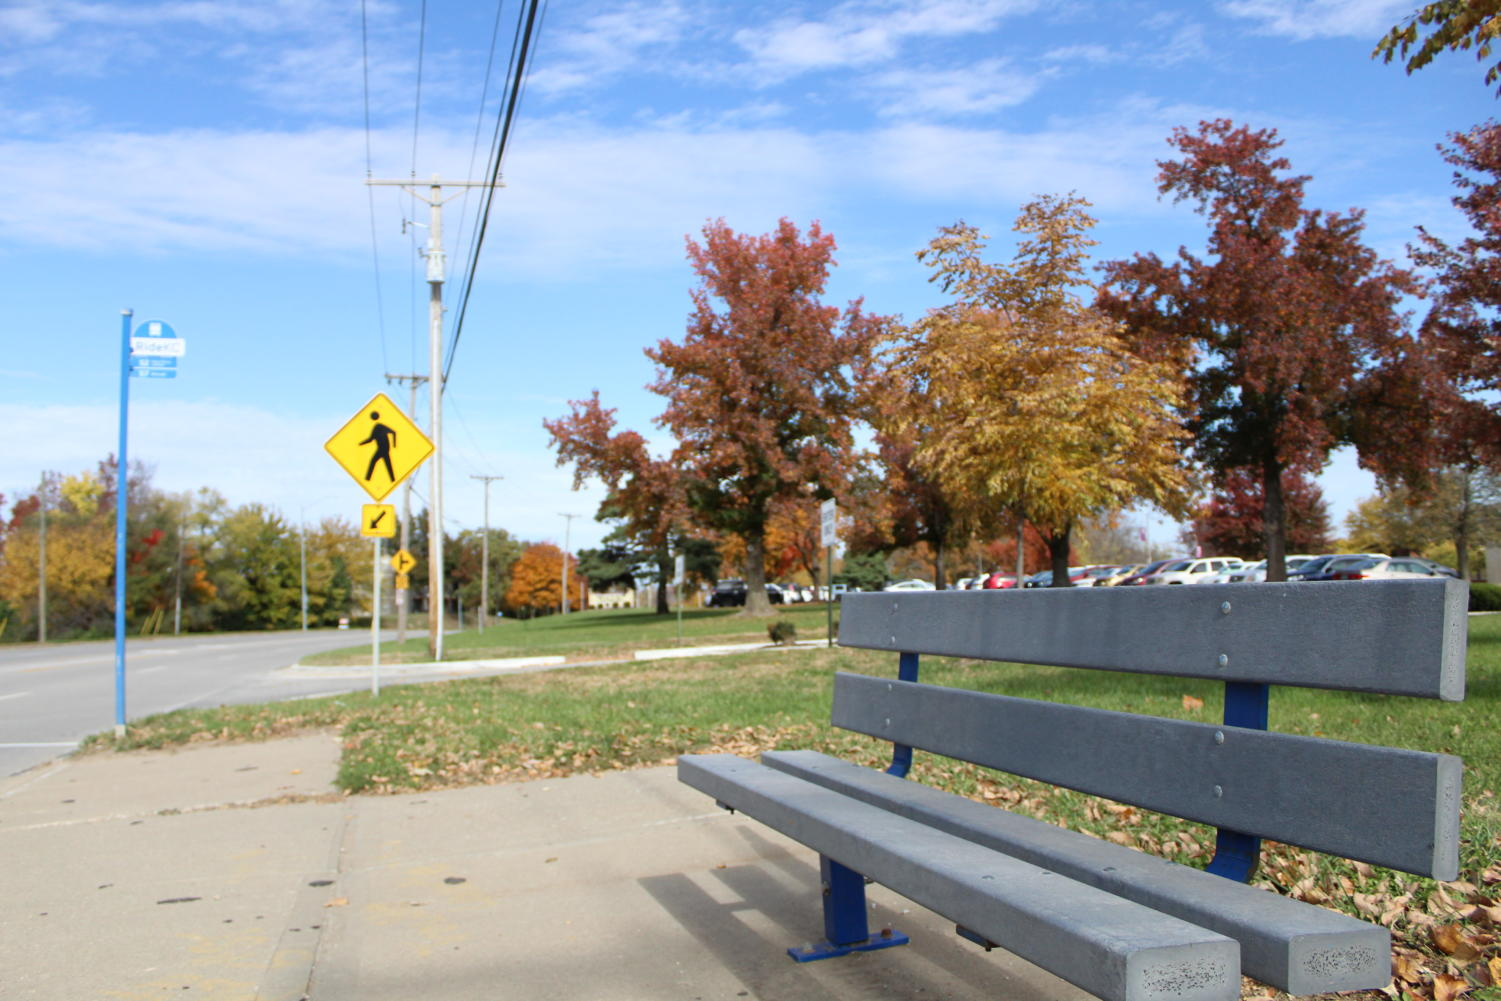 The bus stop near campus which is the proposed spot for the Blessings Box.